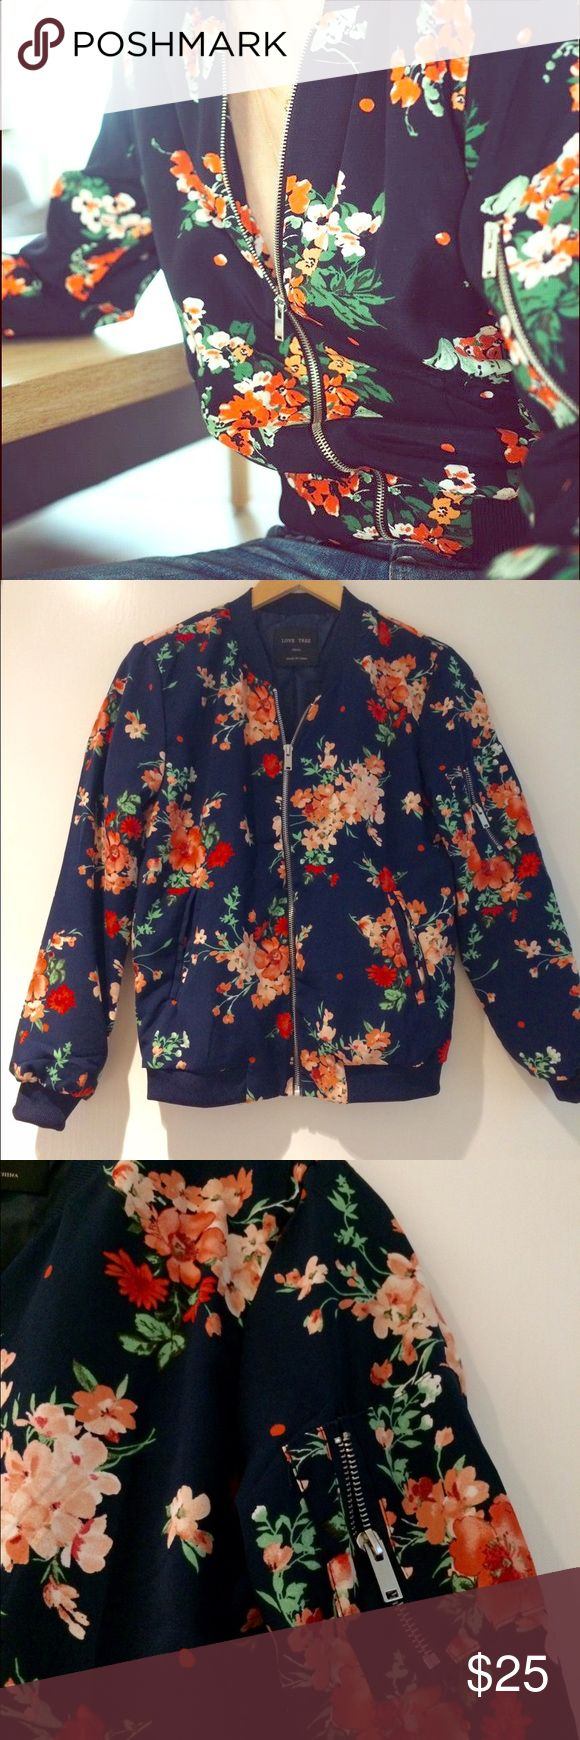 NWOT navy floral bomber jacket Stunning new navy bomber jacket with coral floral pattern. Awesome details like zippered pocket at sleeve. NWOT. First photo is stock, not actual jacket. Reasonable offers considered. Jackets & Coats